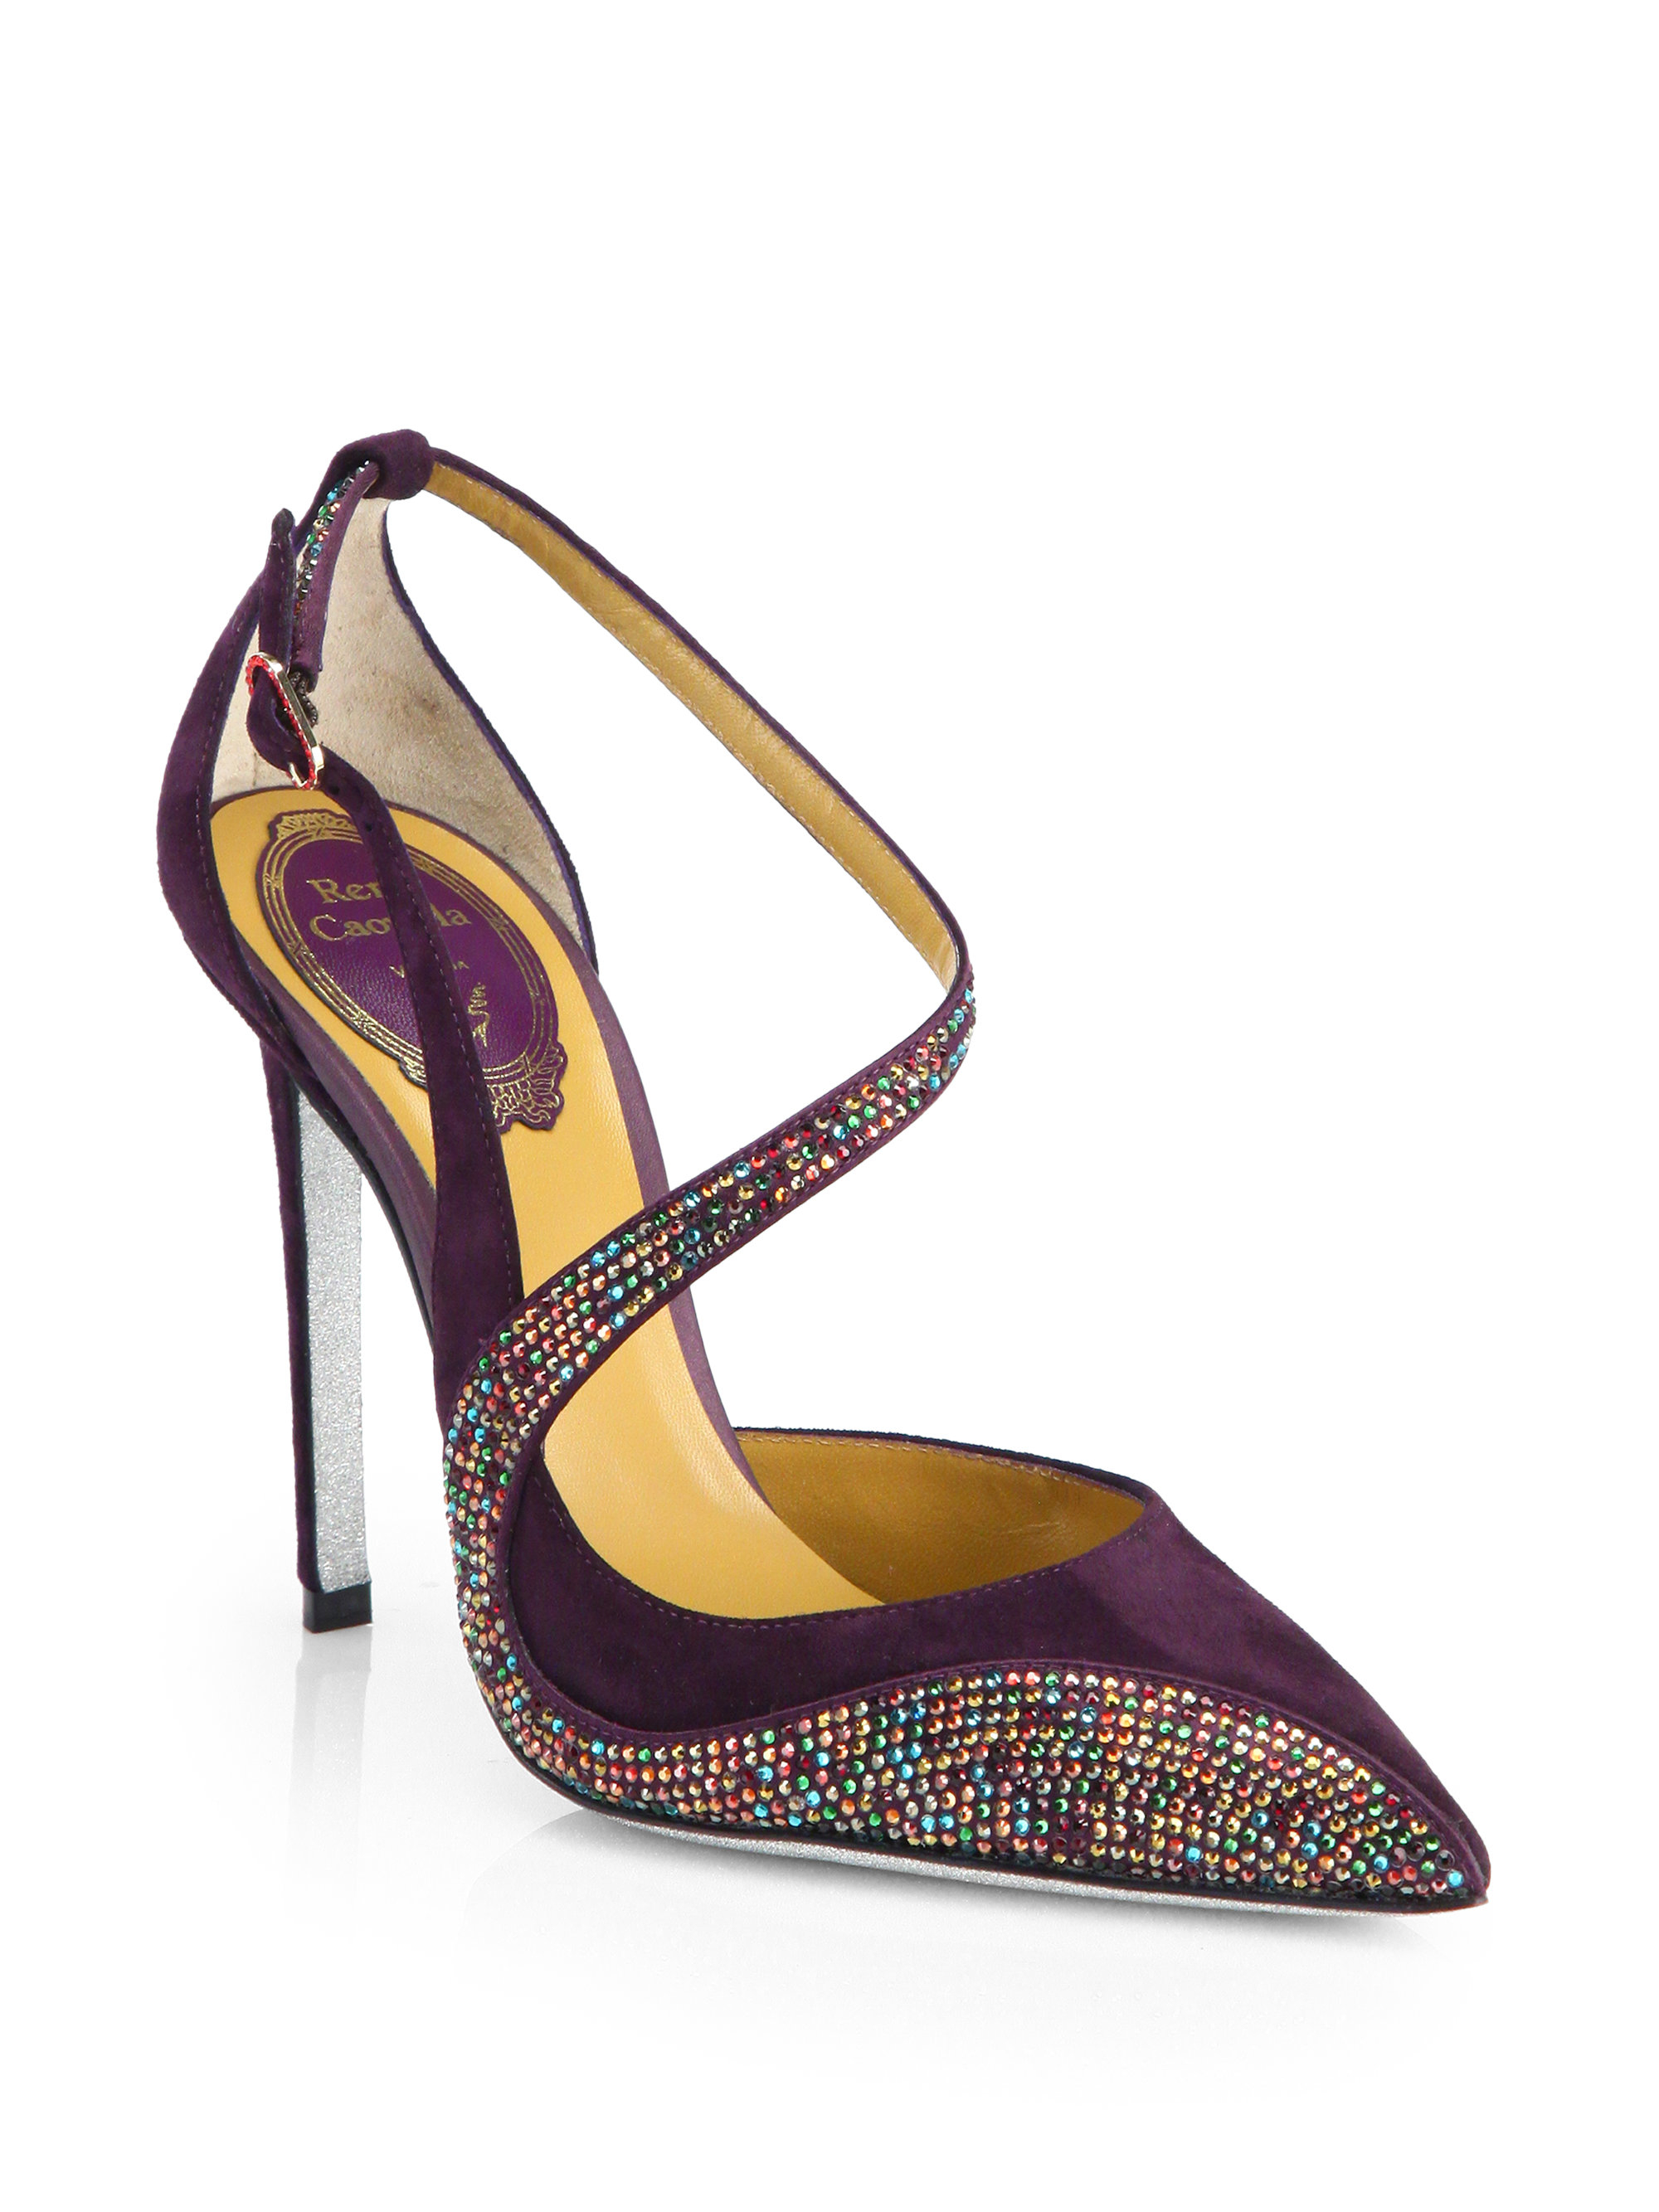 Rene Caovilla Swarovski Crystal & Suede Pumps in Purple